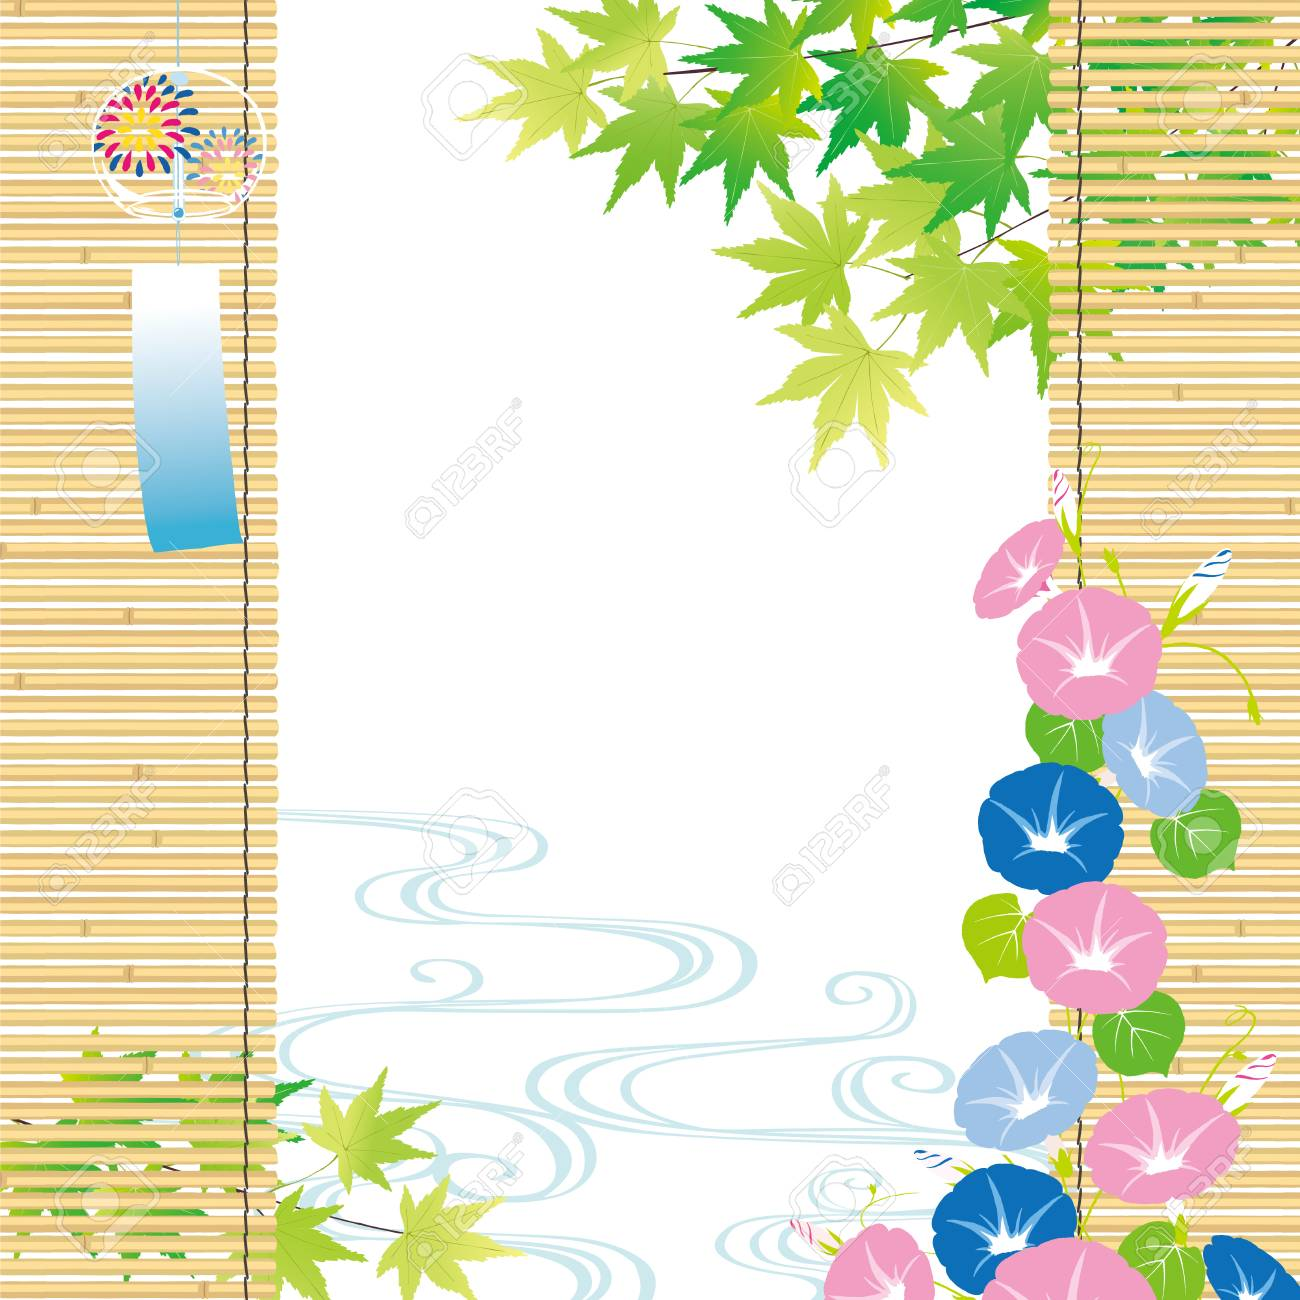 Green maple and morning glory Summer Background - 83808856